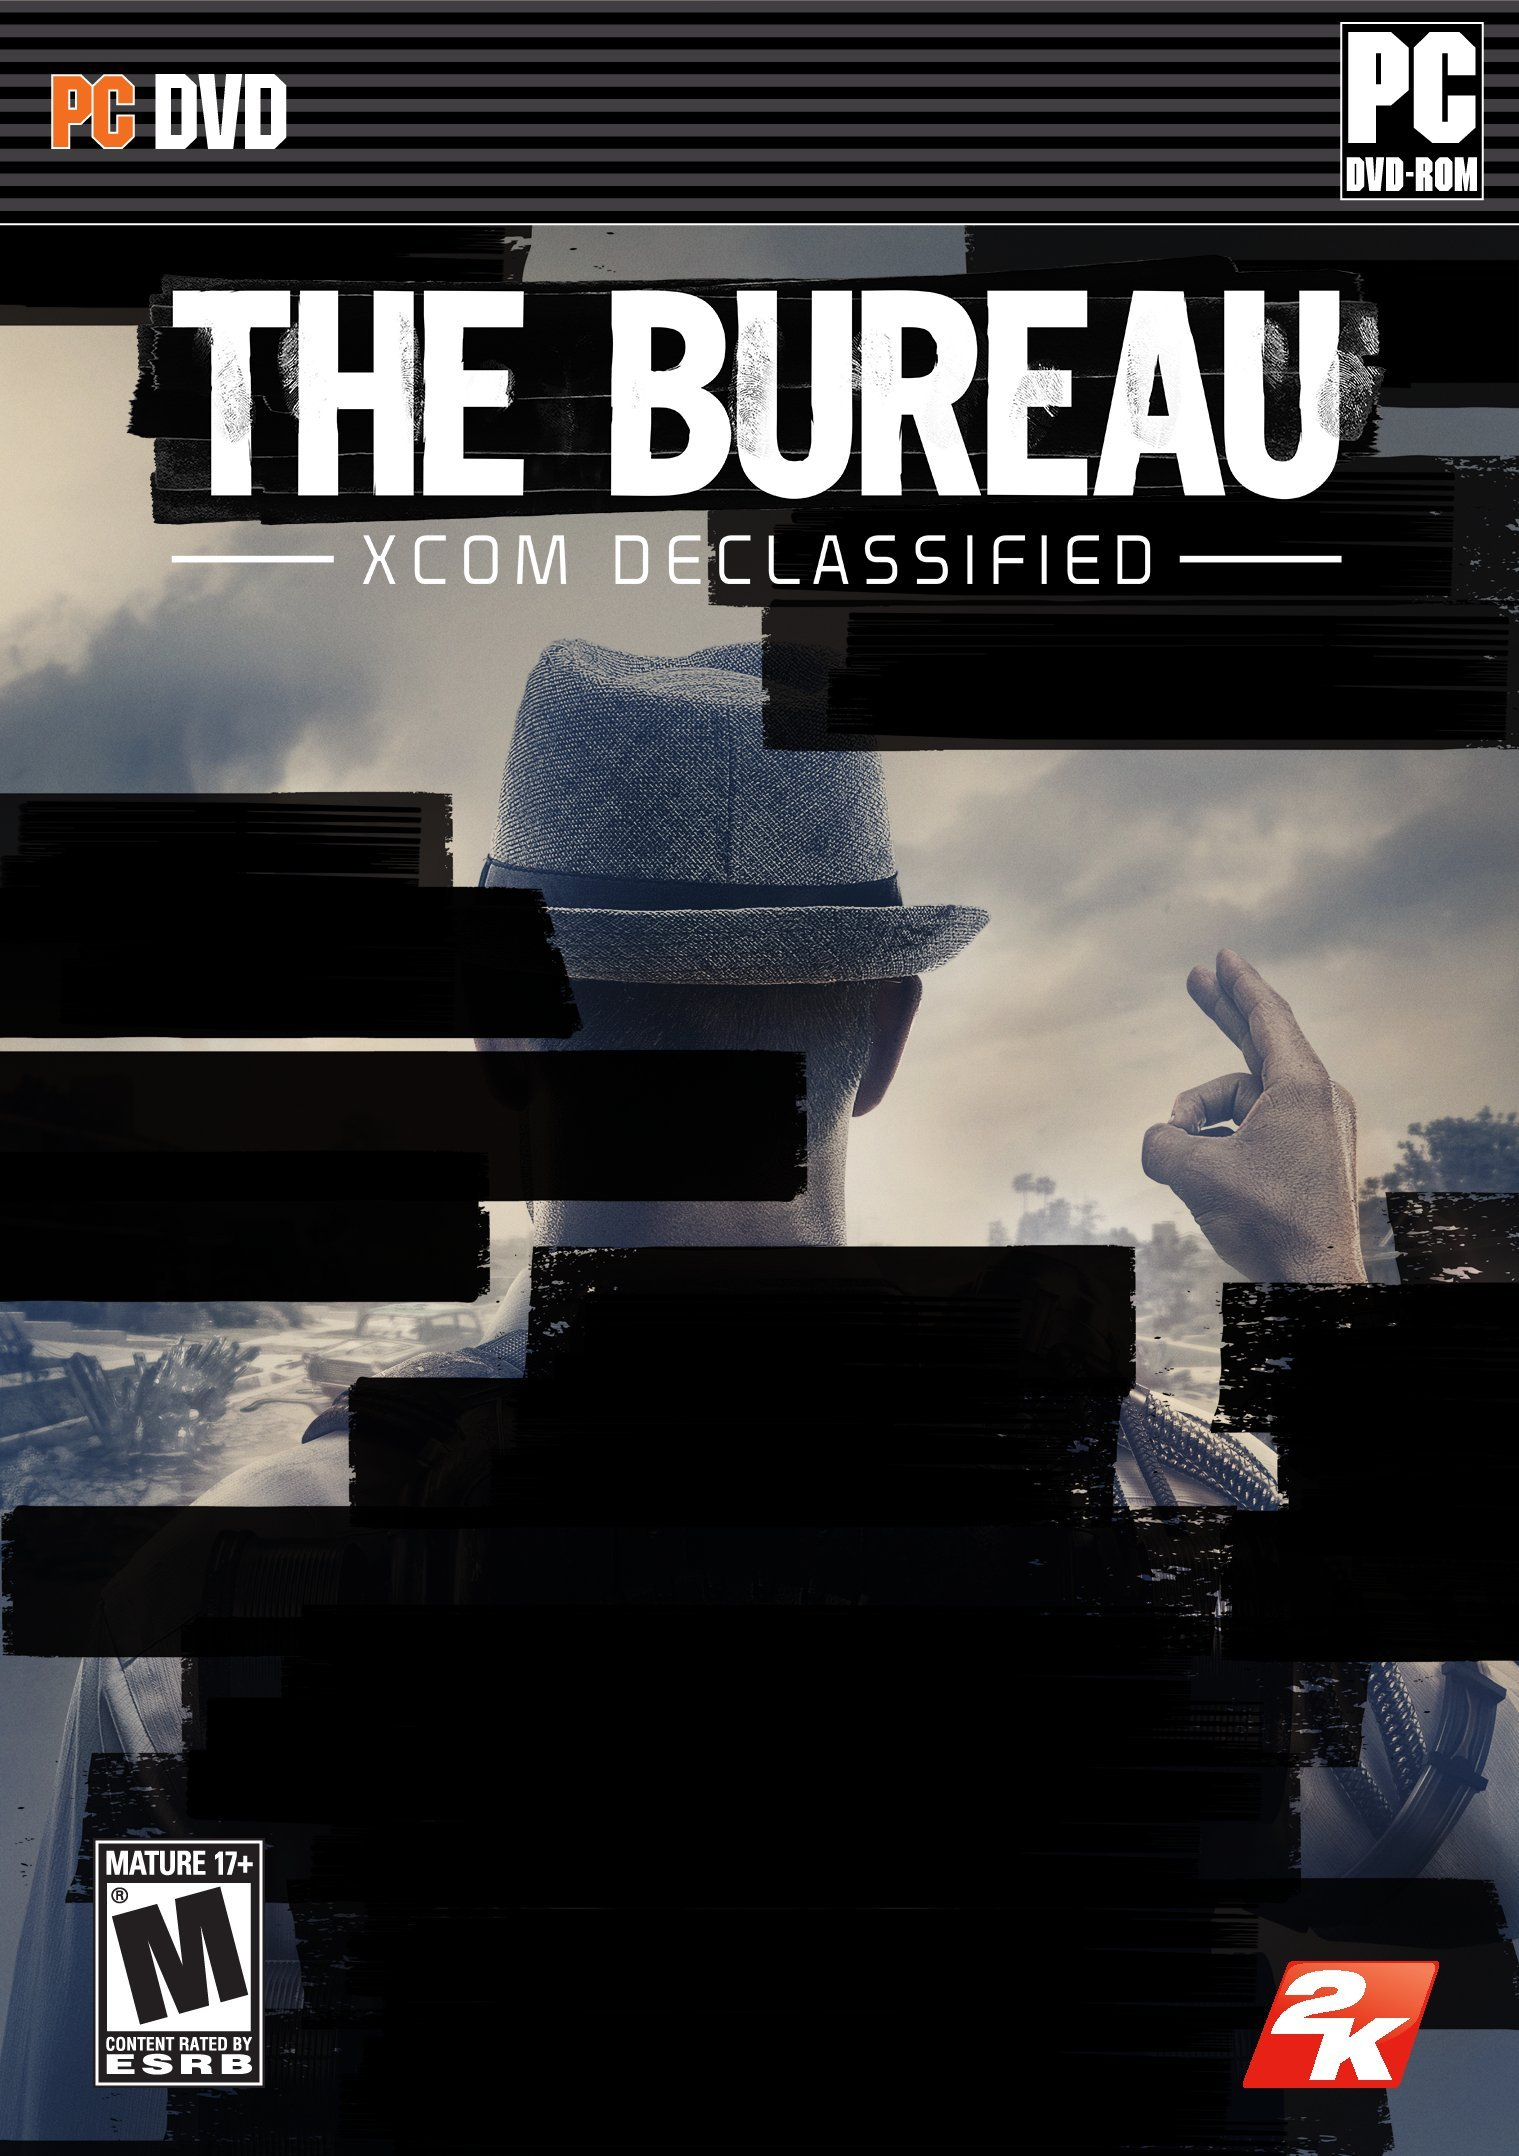 The bureau xcom declassified release date xbox 360 ps3 pc for Bureau 13 pc game